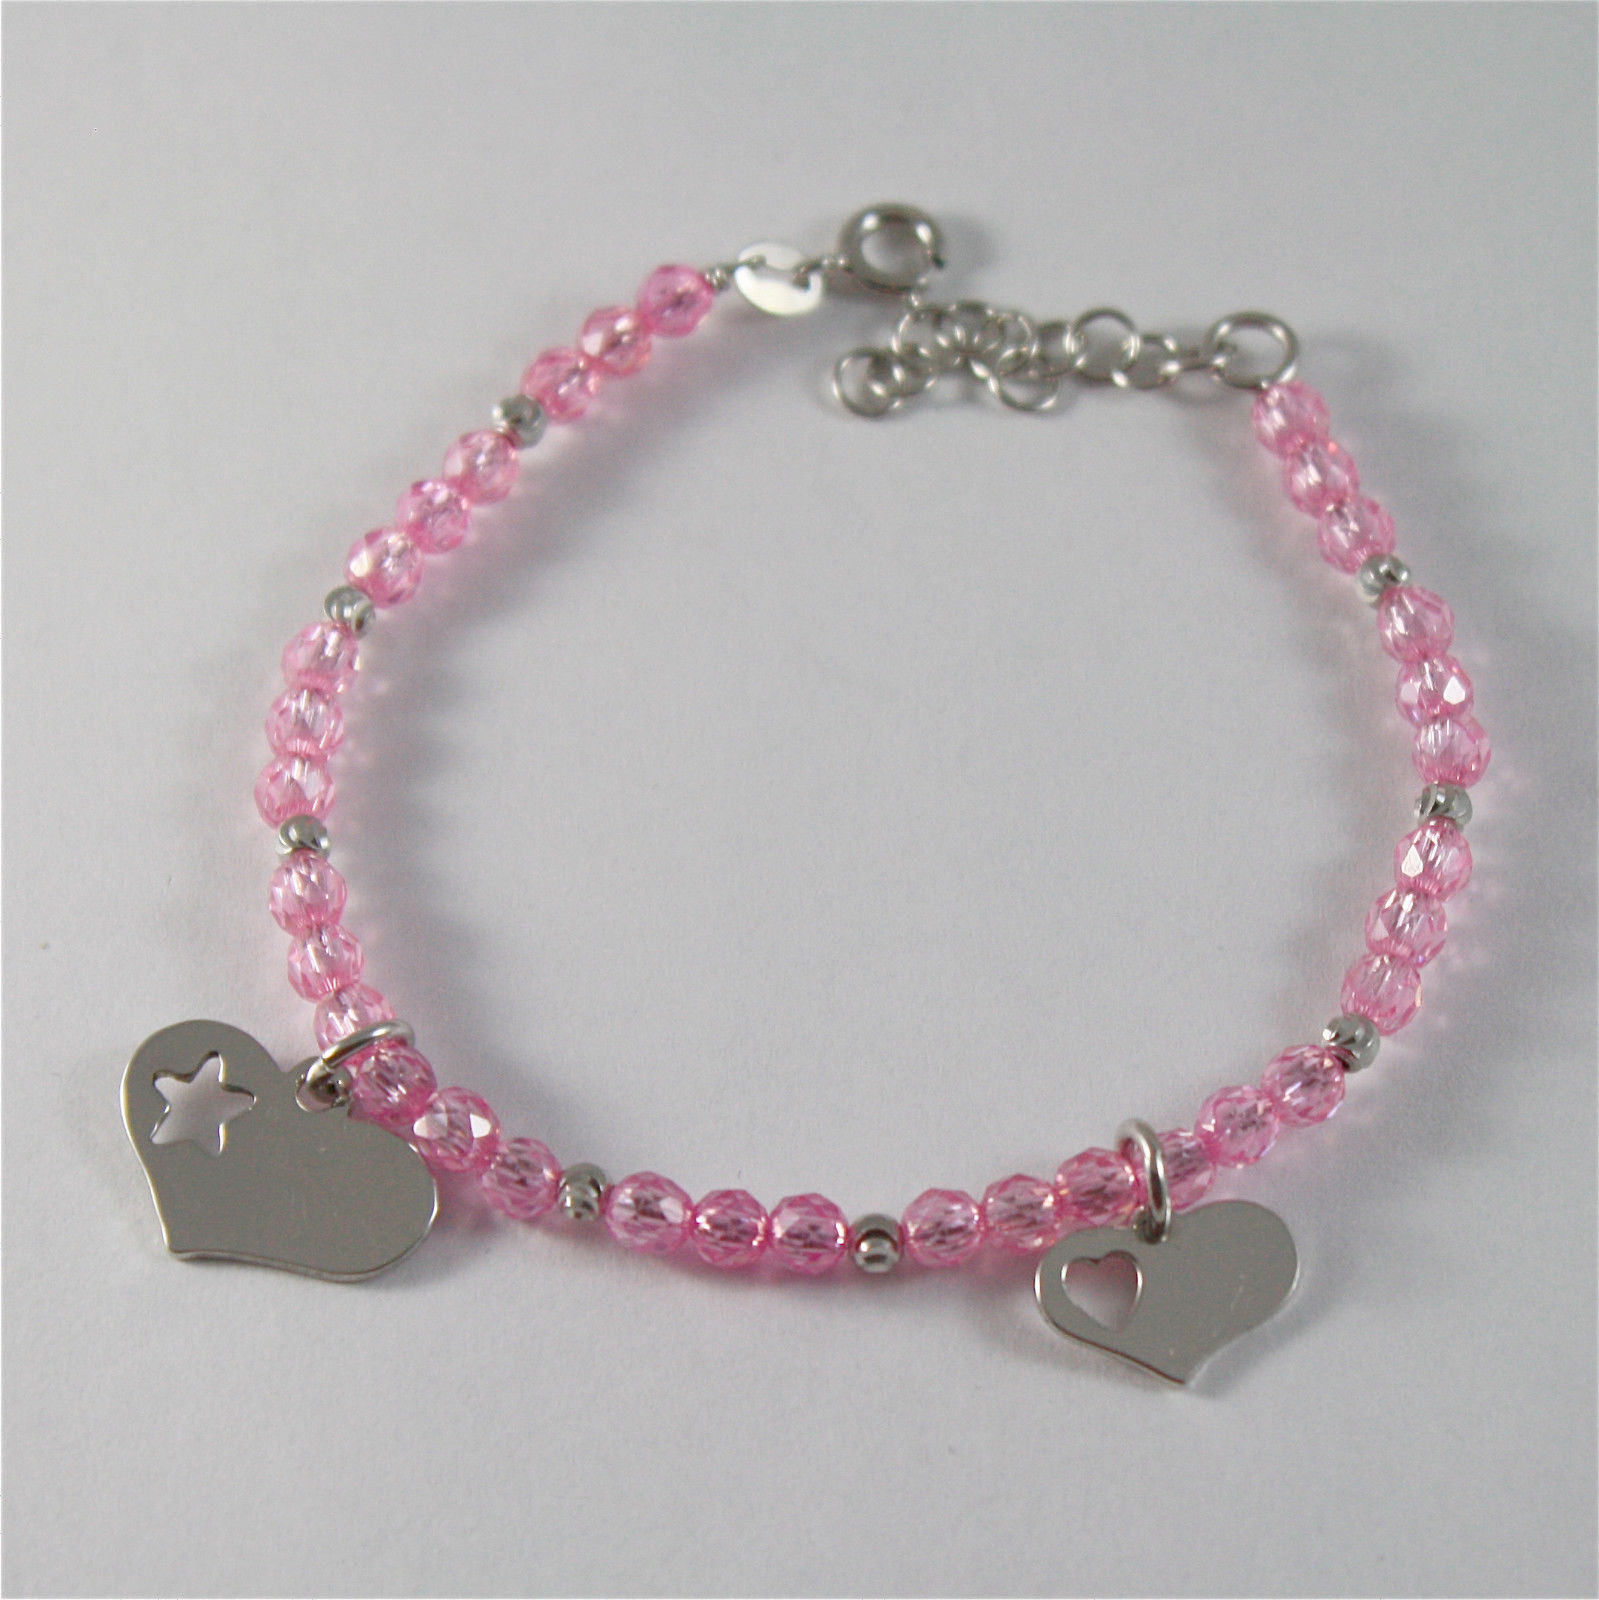 925 SILVER BRACELET WITH HEARTS AND PINK CUBIC ZIRCONIA MADE IN ITALY 59,00 USD